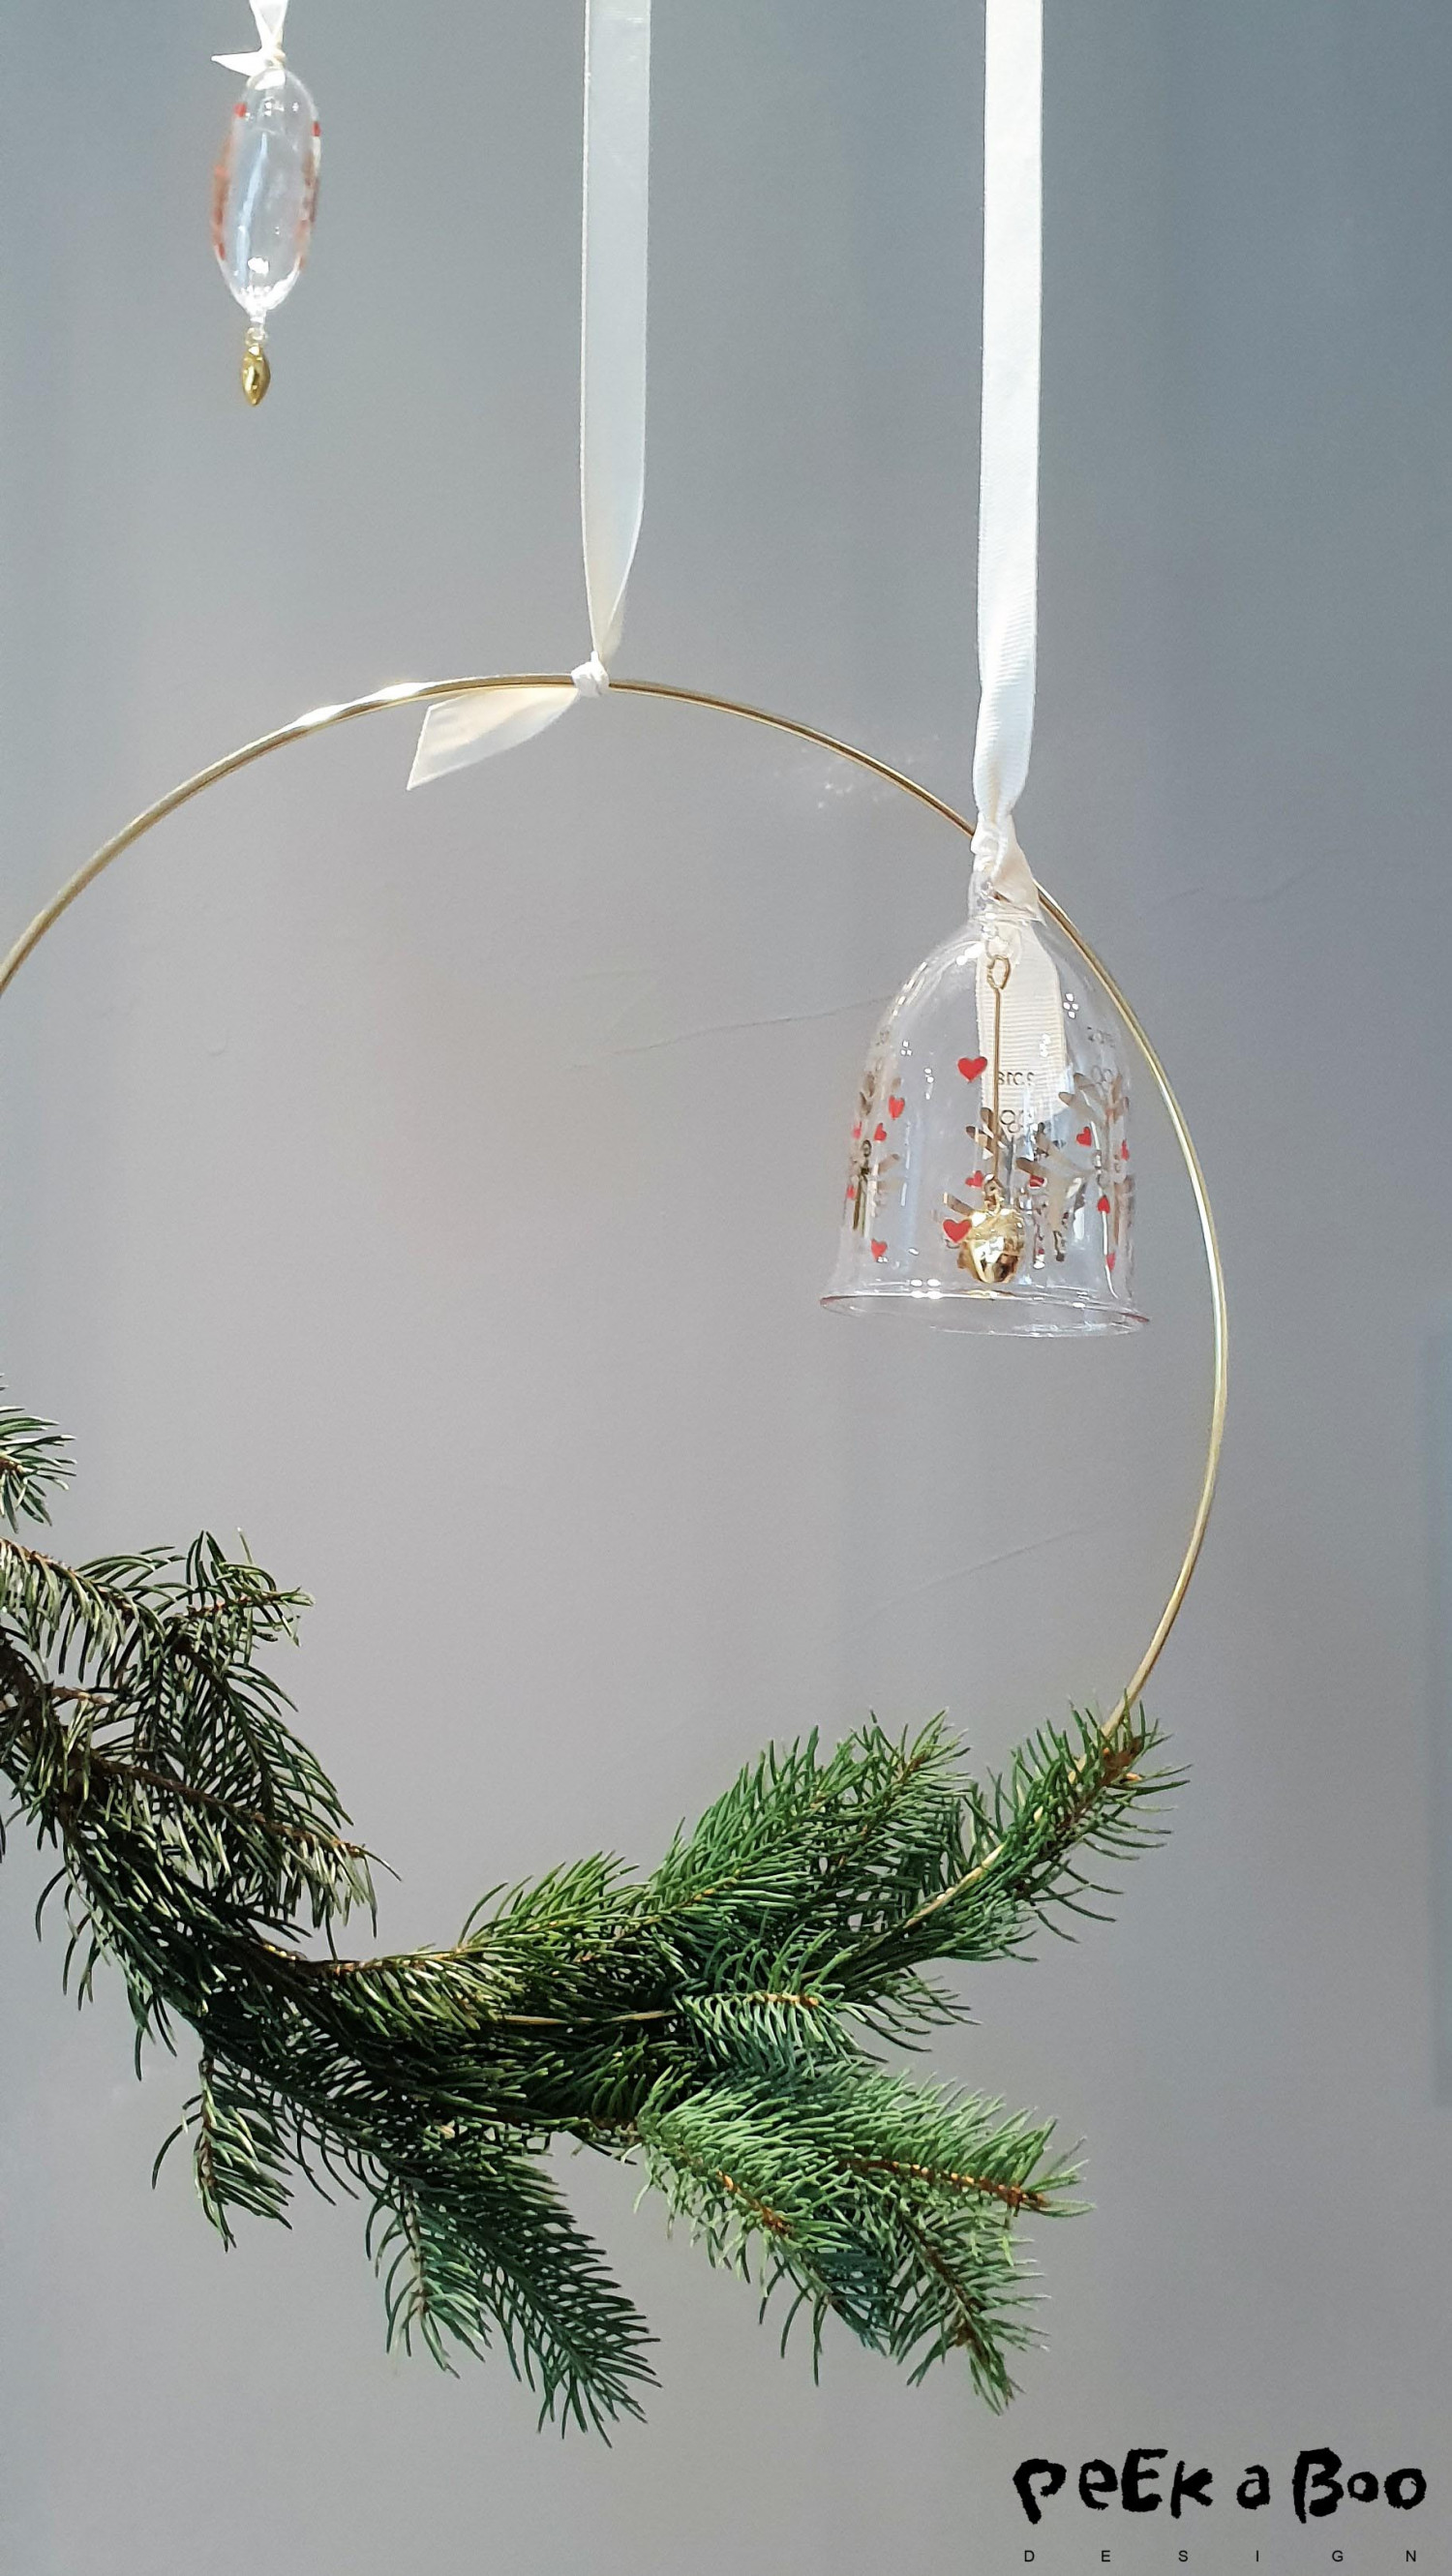 Holmegaard glass ornaments designed by Ann-Sofi Romme, are really cute on this simple wreath.